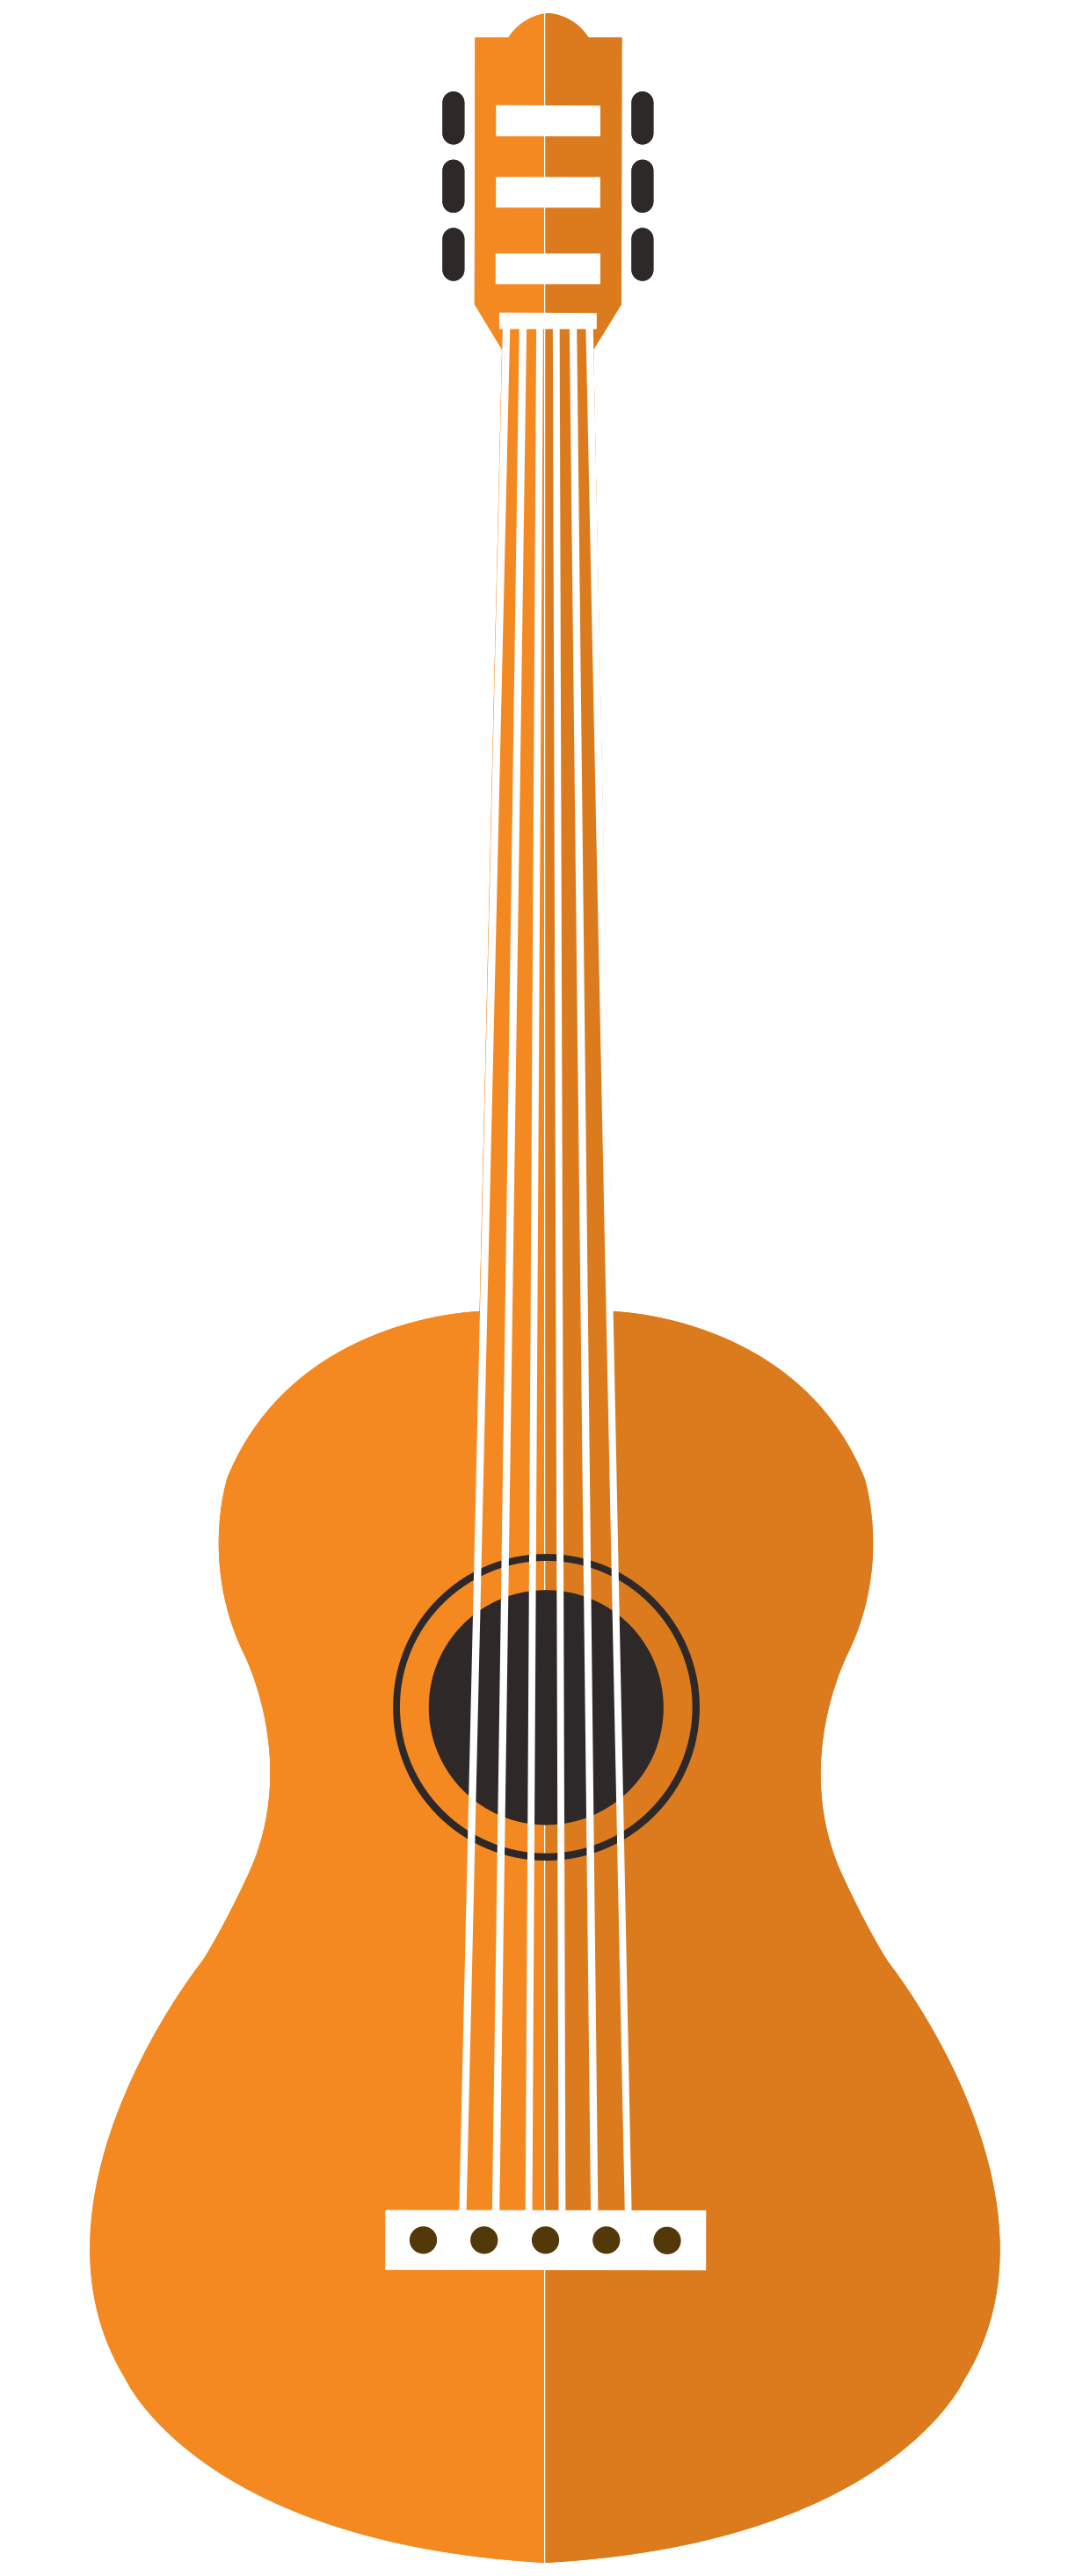 Classical Music Instrument PNG Image